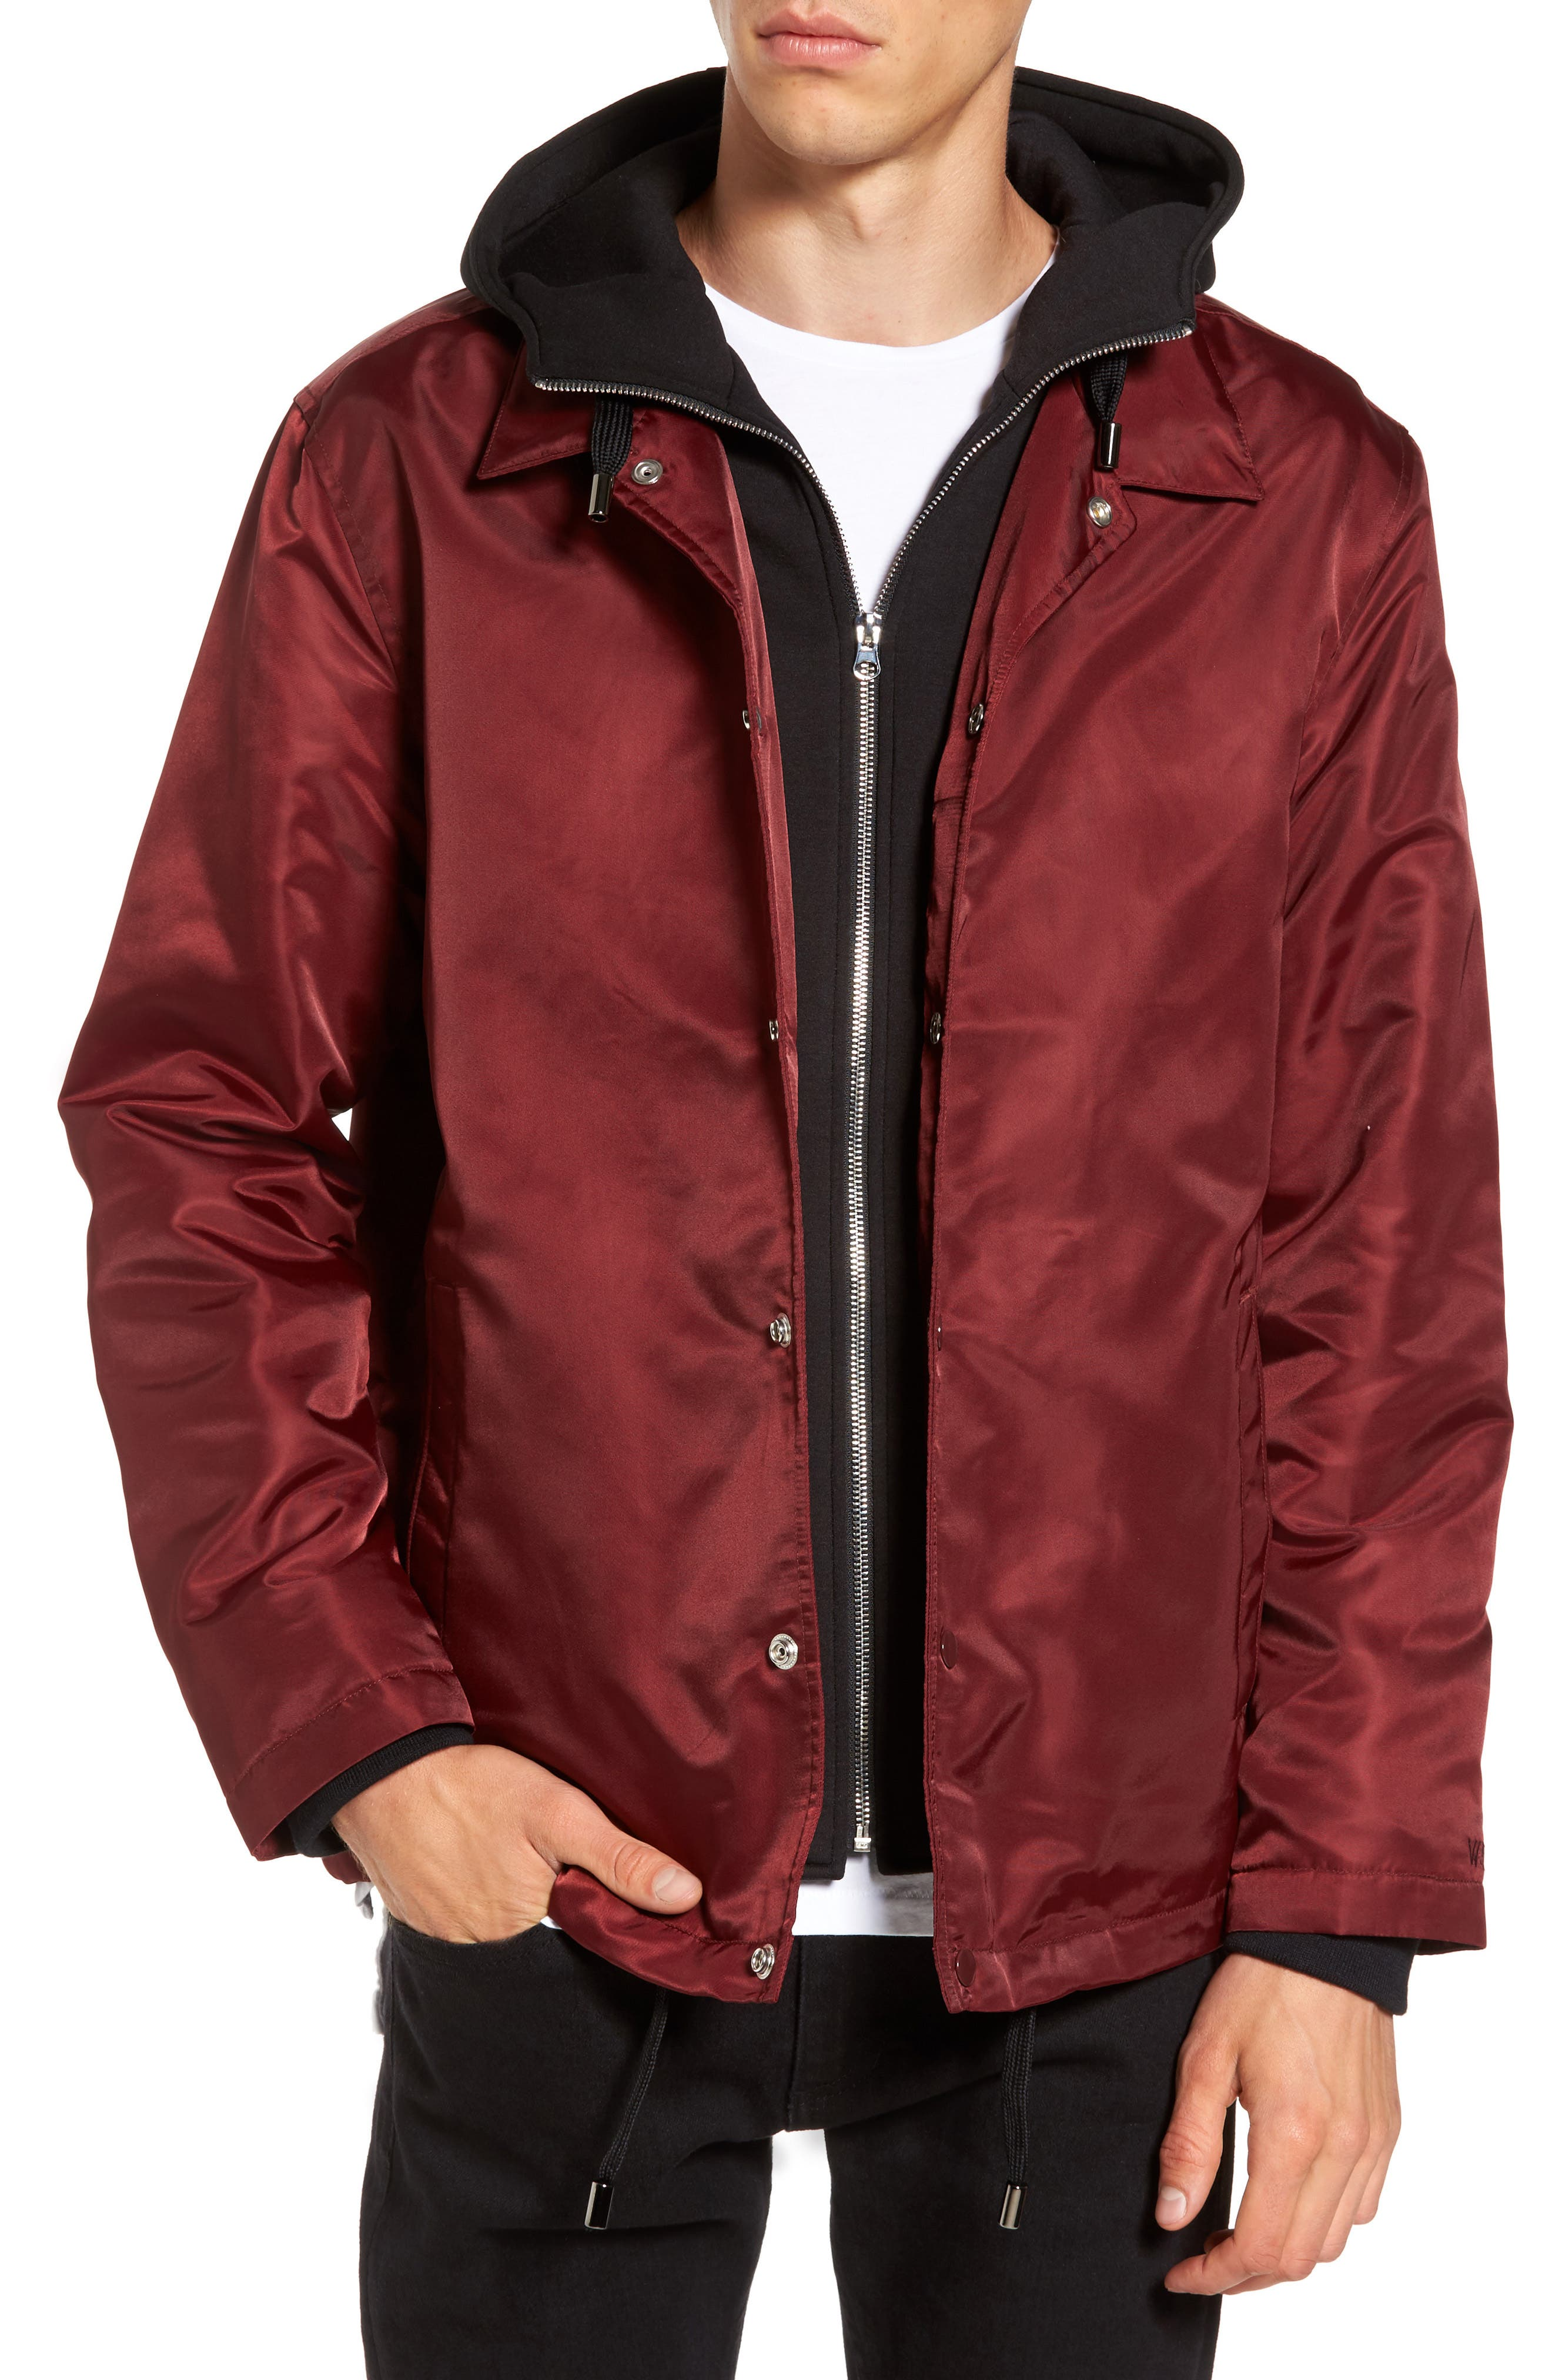 Yorkshire Hooded Coach's Jacket,                         Main,                         color, Burgundy